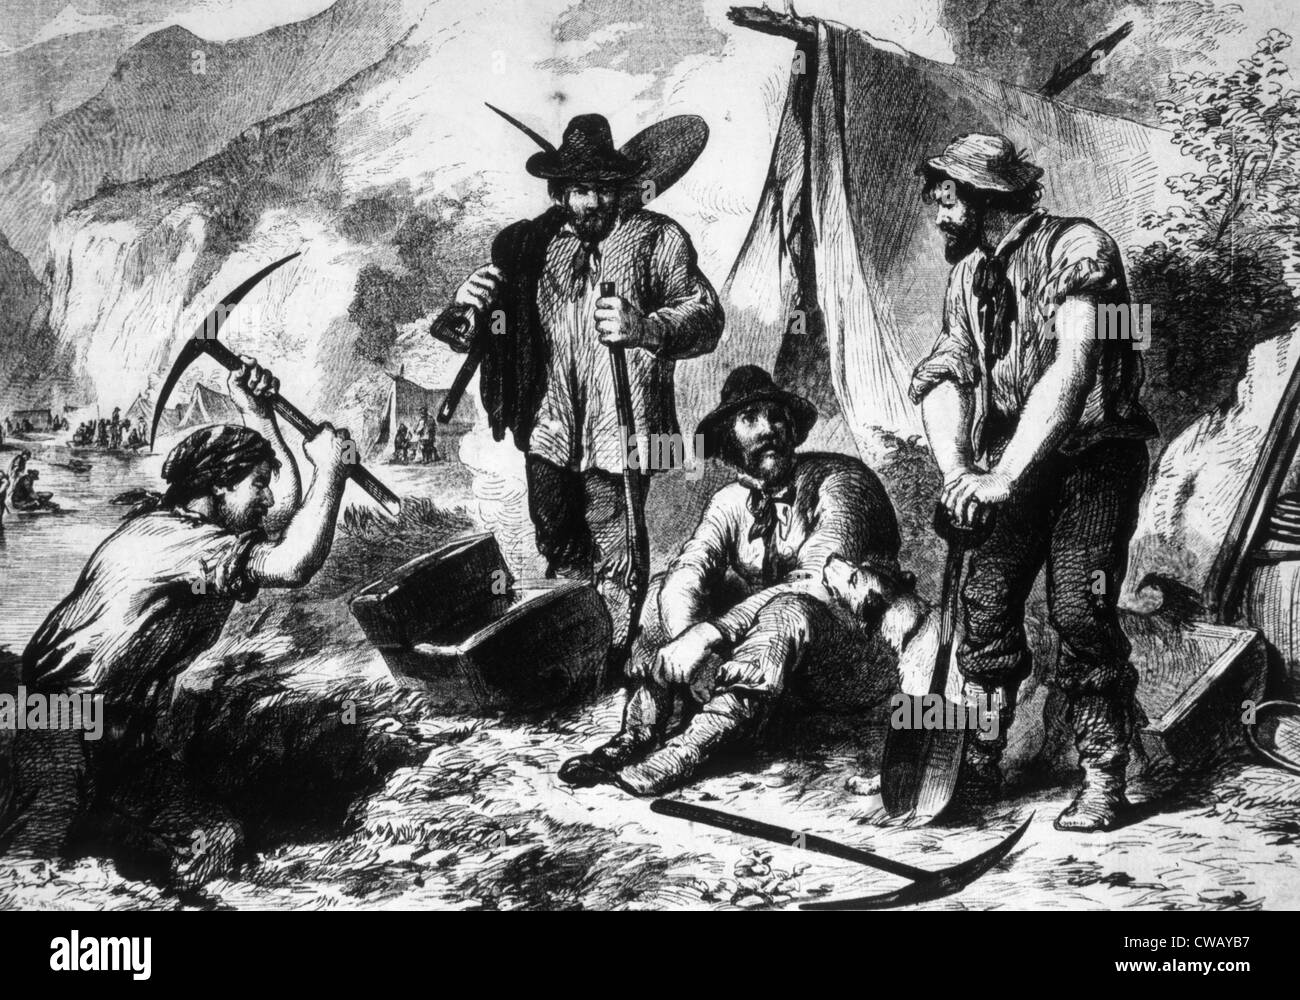 The Gold Rush, gold miners in California, 1849